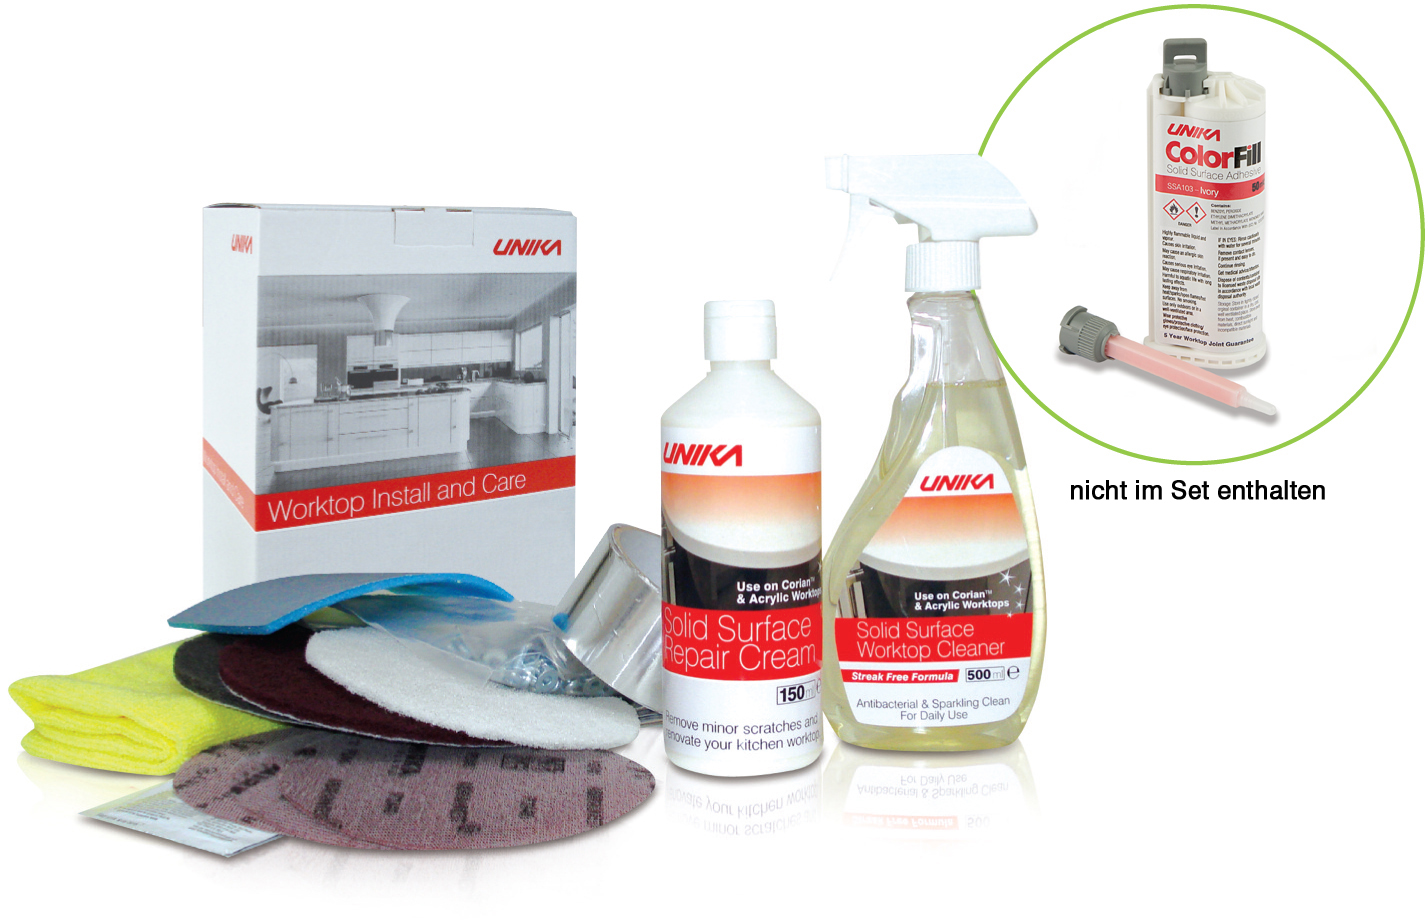 Solid Surface & Composite Install Kit